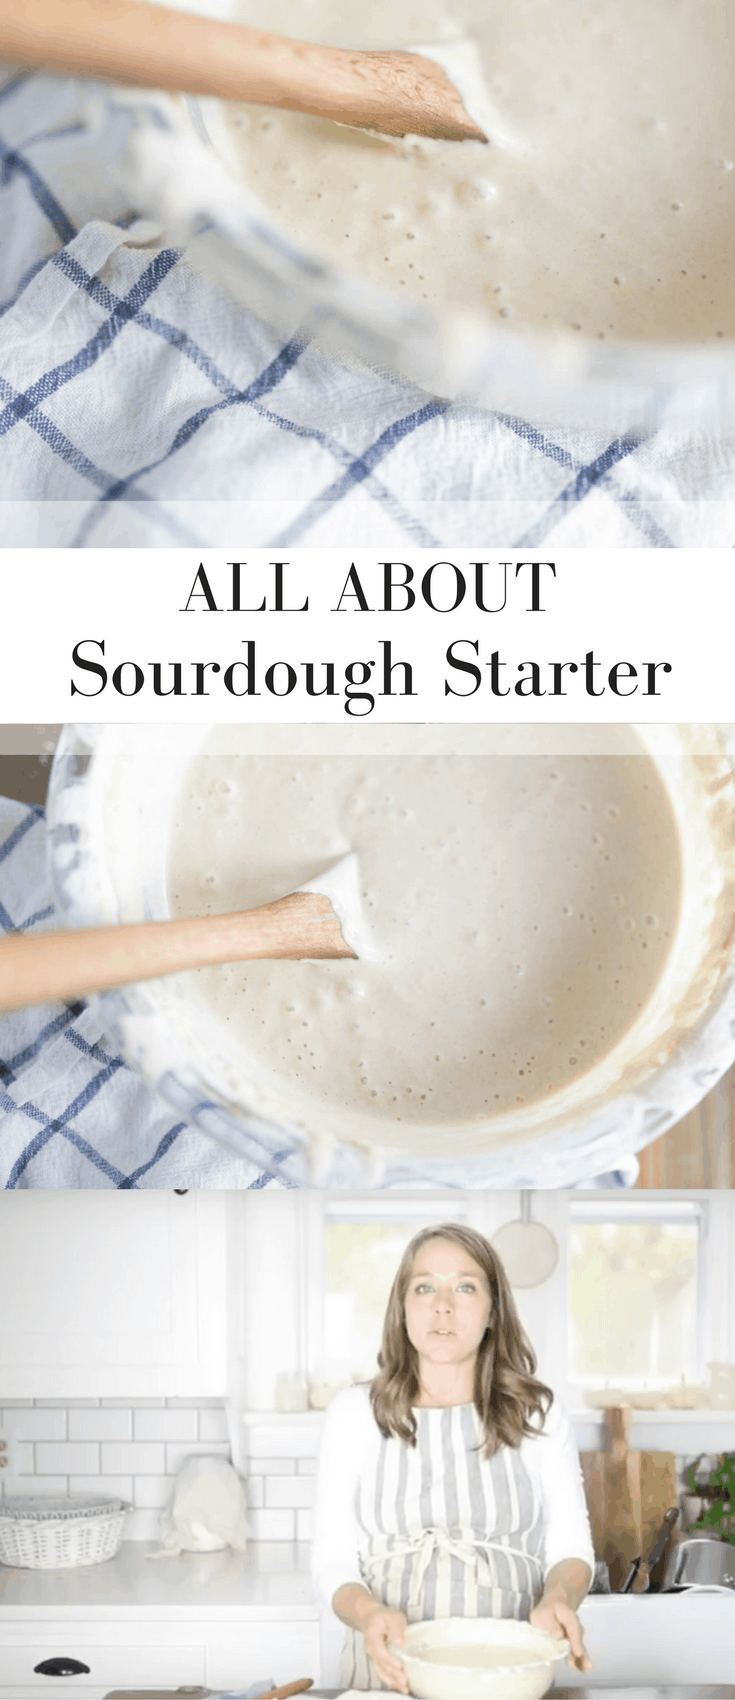 how to make homemade sourdough starter from scratch video tutorial.